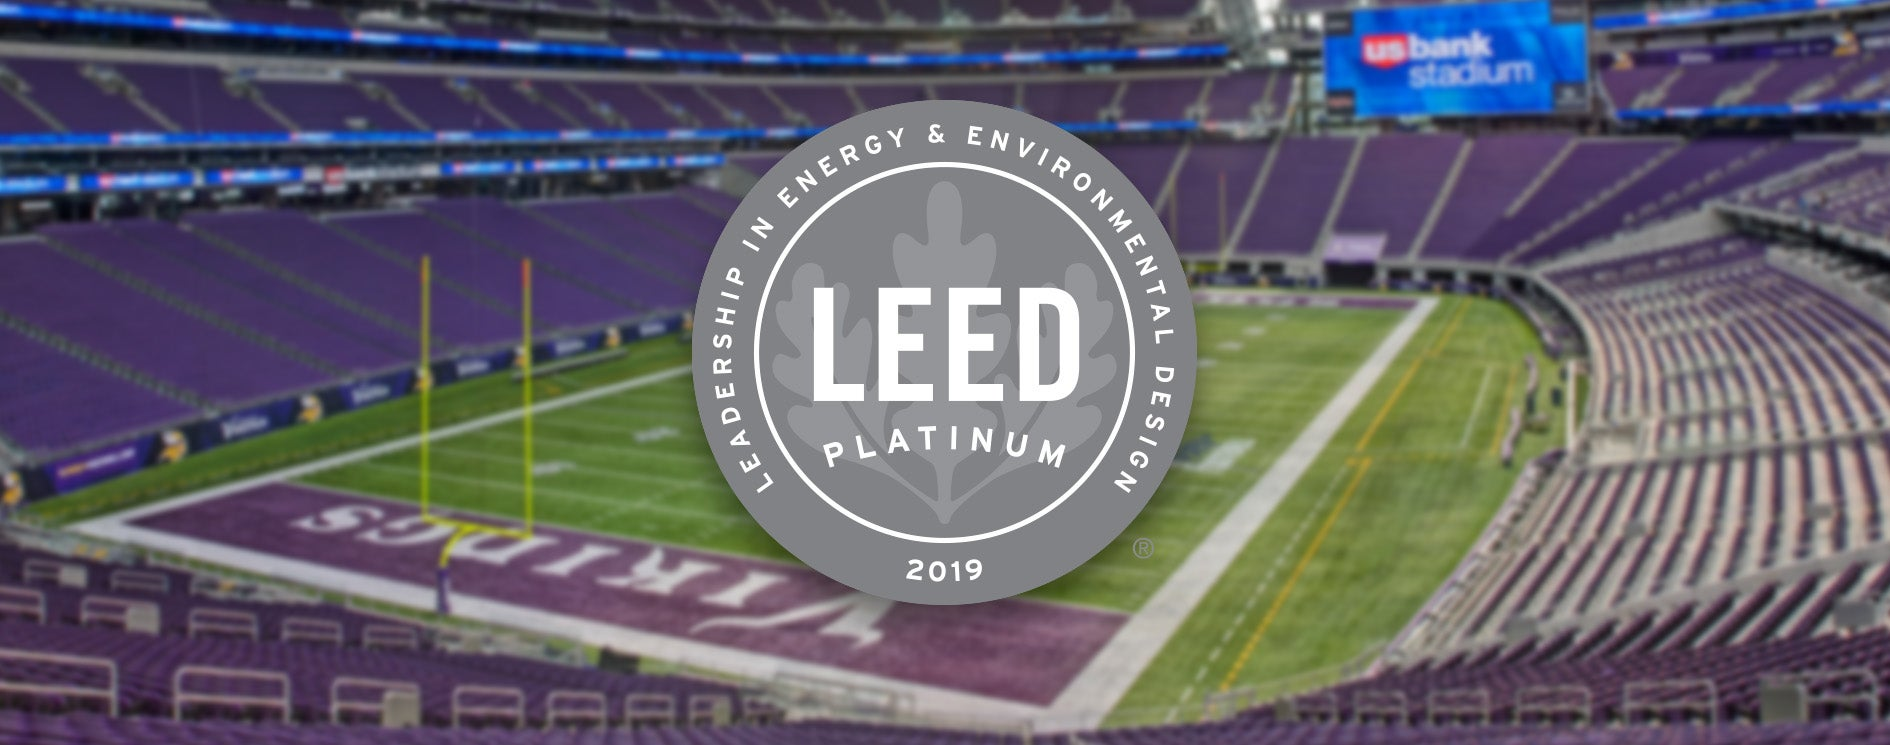 More Info for U.S. Bank Stadium Becomes the First Professional Sports Stadium to Earn LEED Platinum Using the Arc Performance Platform